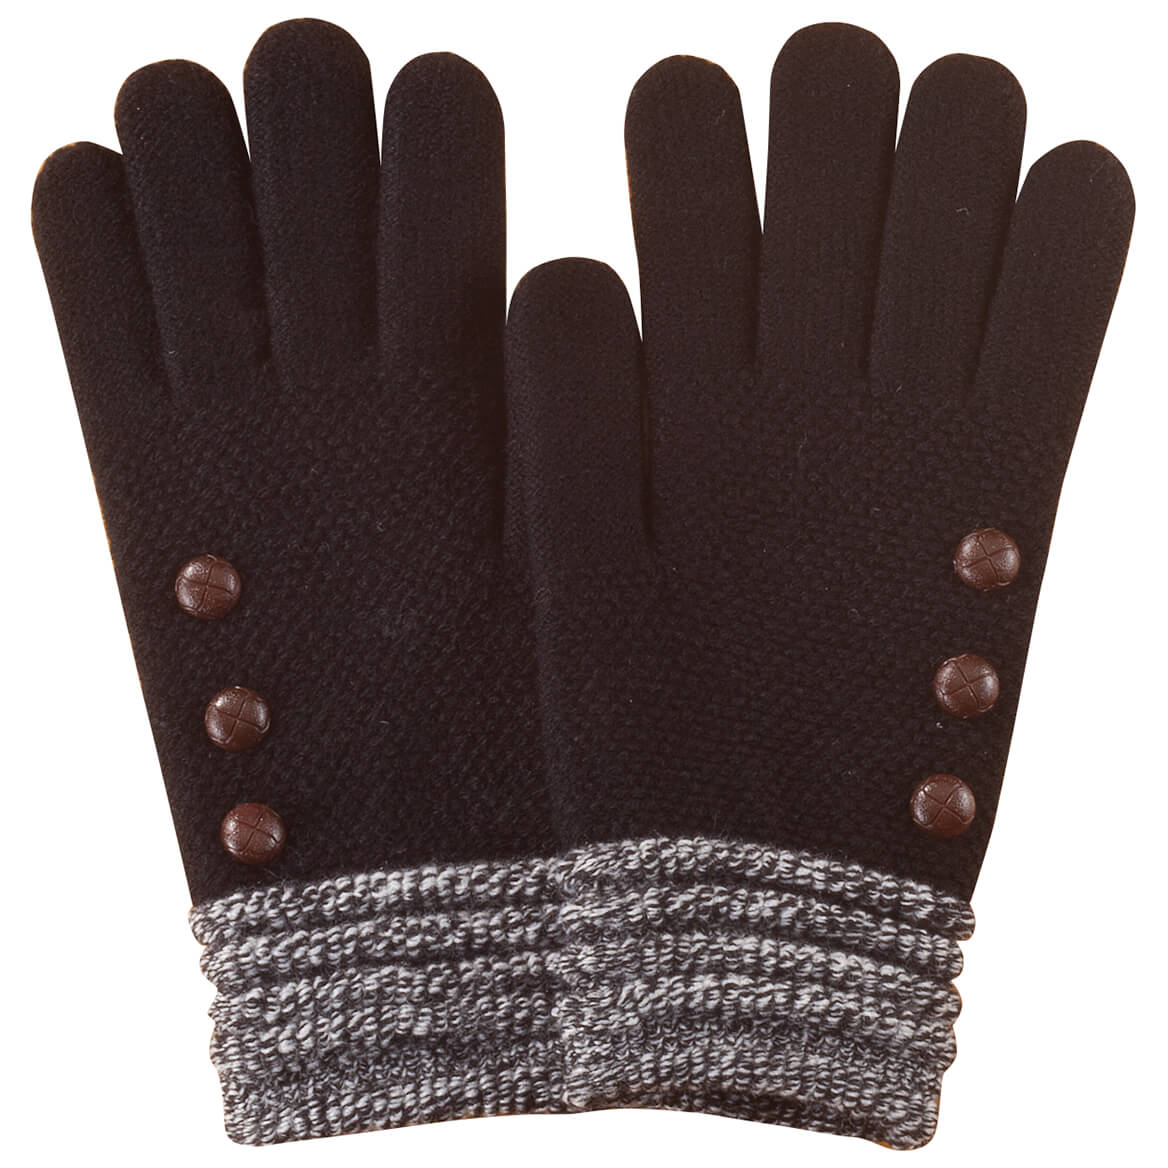 Britts Knits™ Gloves